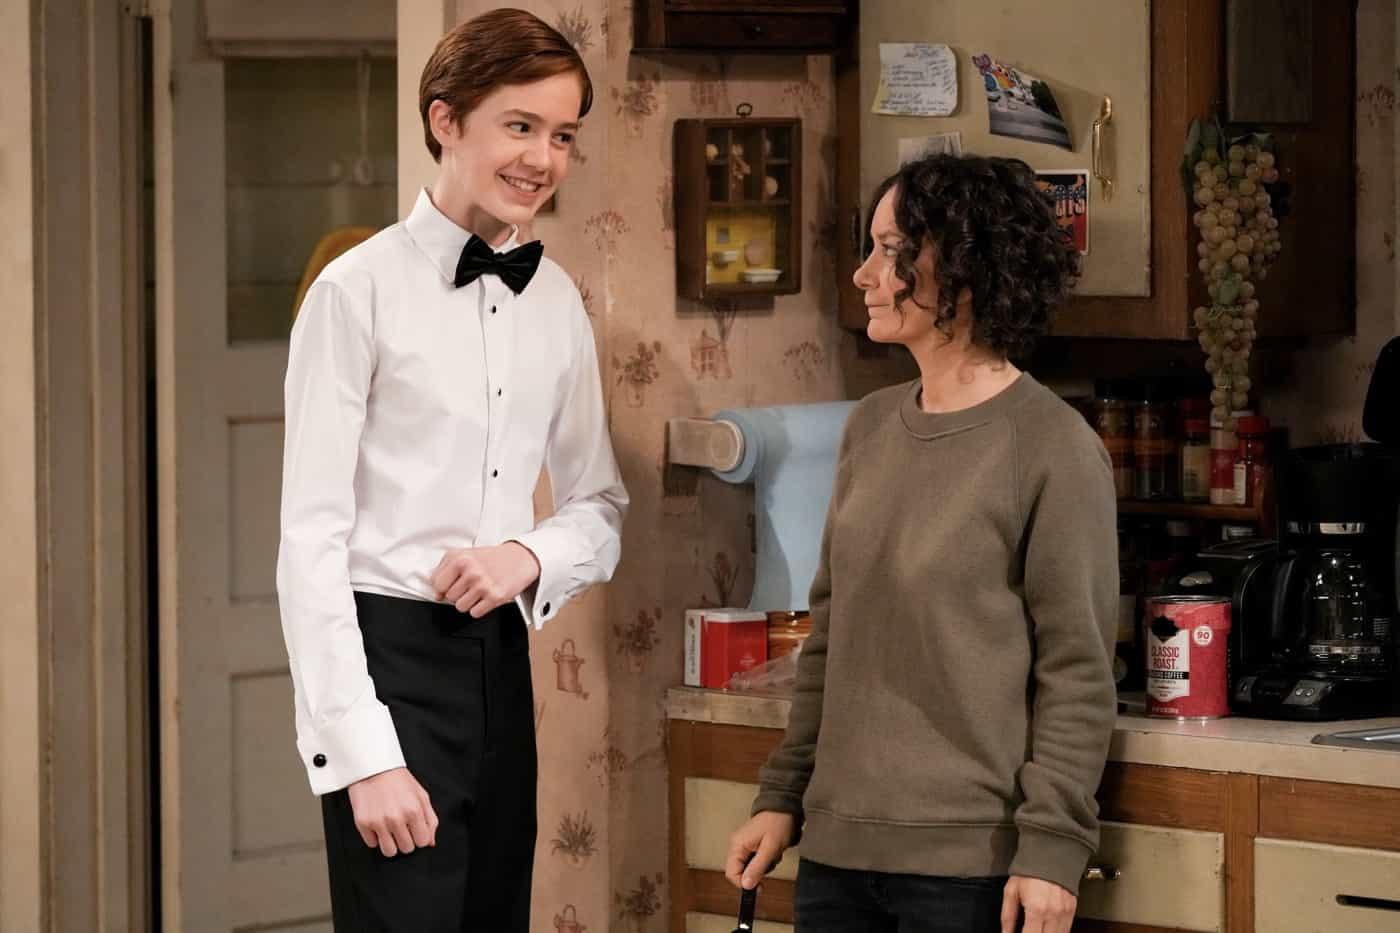 """THE CONNERS Season 4 Episode 4 - """"The Wedding of Dan and Louise"""" - It's Dan and Louise's wedding day, but it's a far-from-perfect walk down the aisle, especially when a weather report forecasts that a tornado is headed for Lanford creating chaos and surprises on """"The Conners,"""" WEDNESDAY, OCT. 13 (9:00-9:31 p.m. EDT), on ABC. (ABC/Scott Everett White) AMES MCNAMARA, SARA GILBERT"""